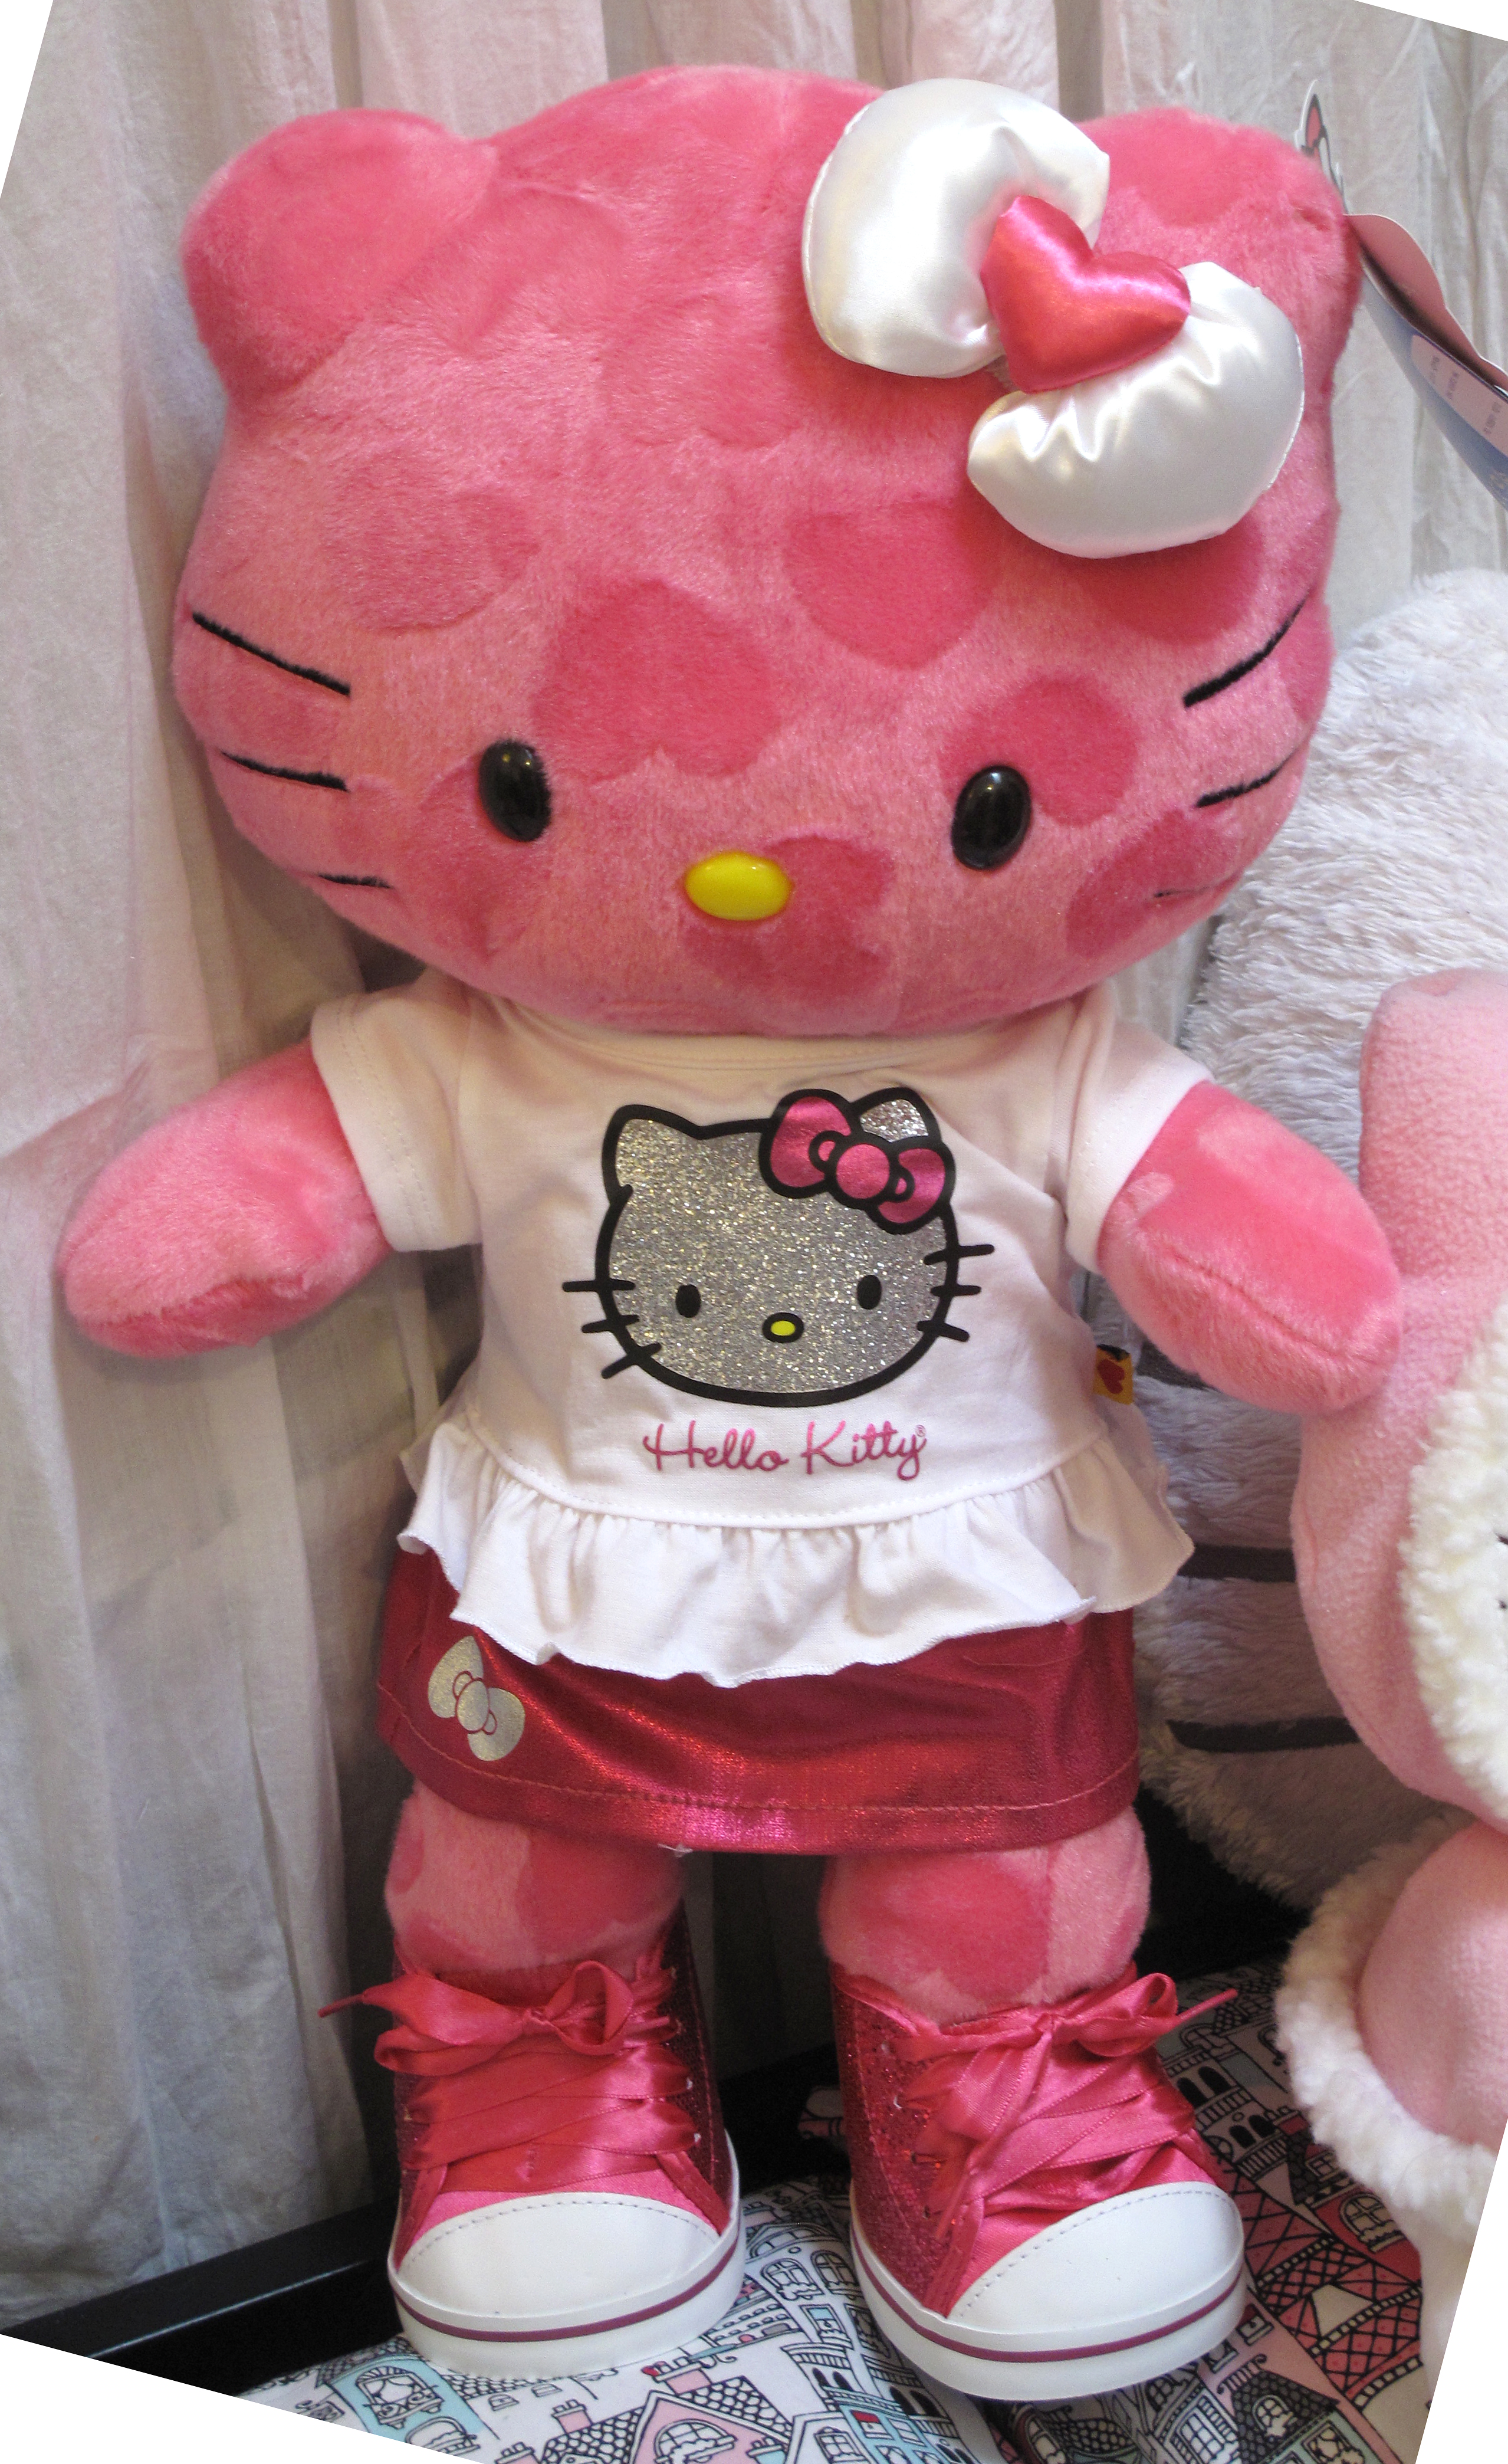 Here is the second outfit for my Pink Hearts Hello Kitty from Build-A-Bear.  She is sporting a Hello Kitty shirt and cute Hello Kitty skirt, ...